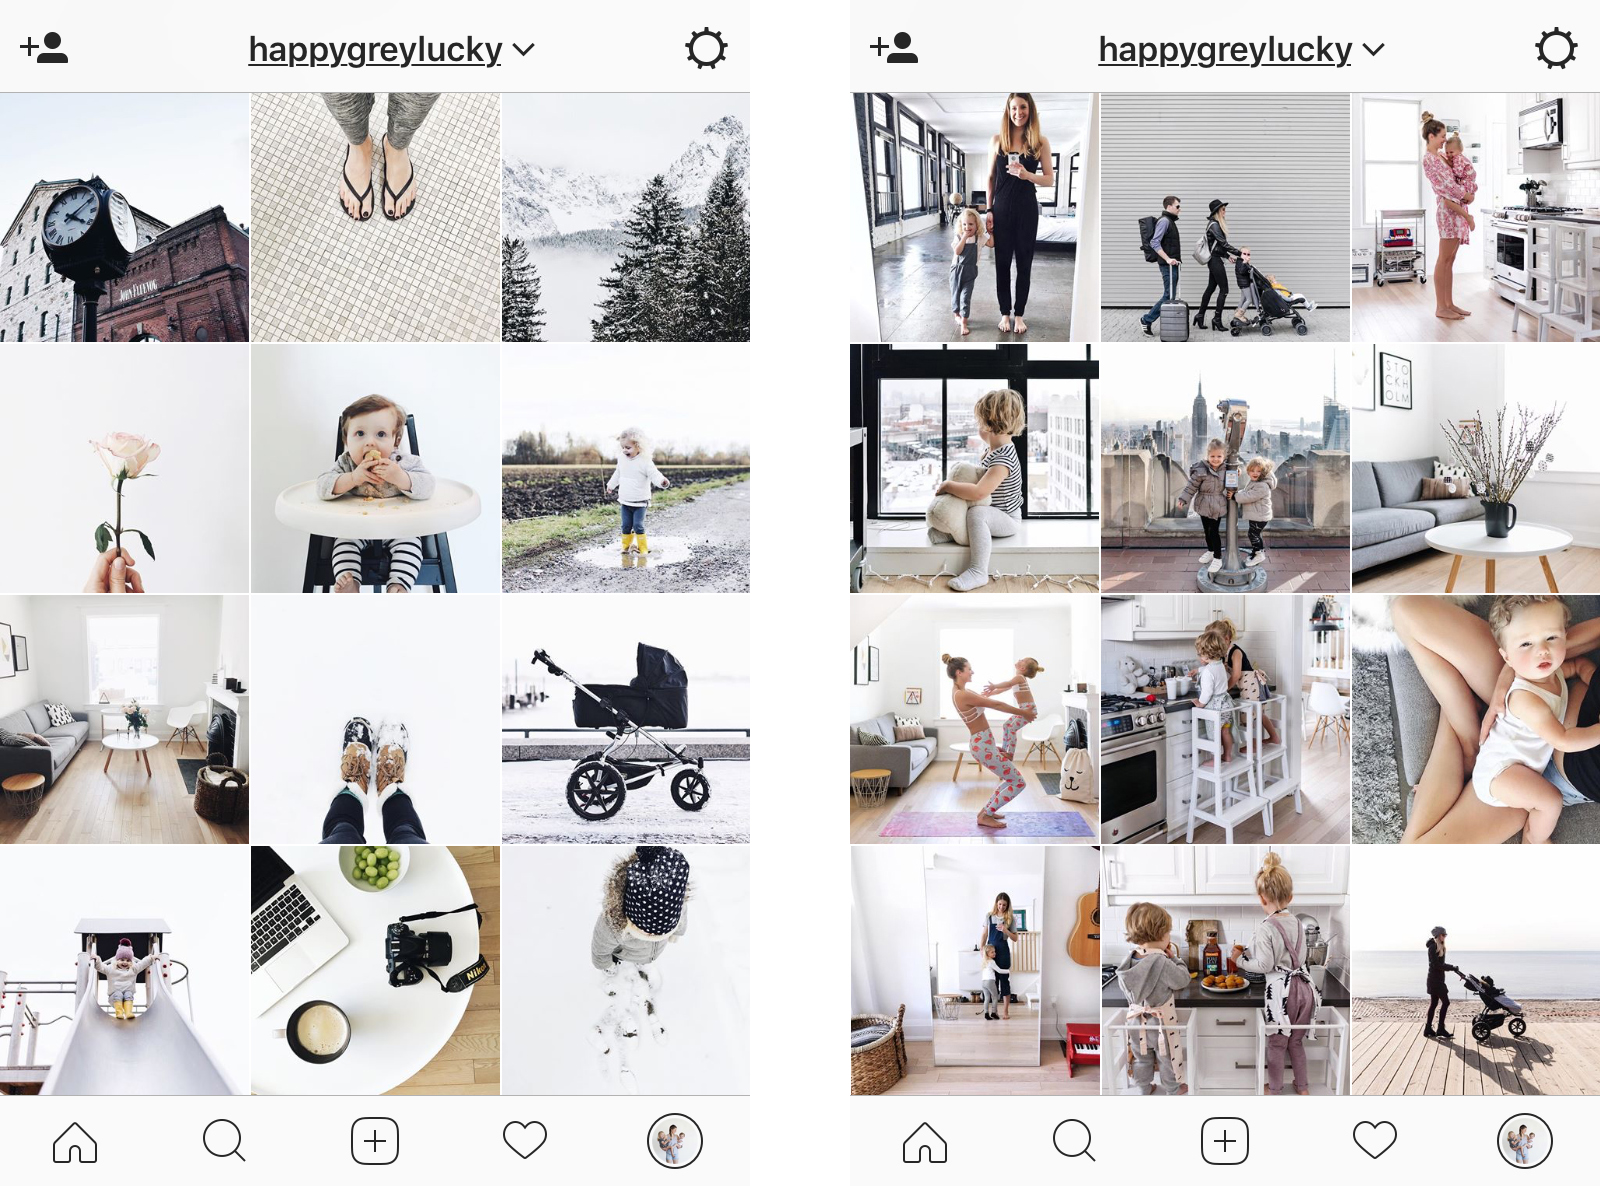 25 ways to grow your Instagram account quickly and organically